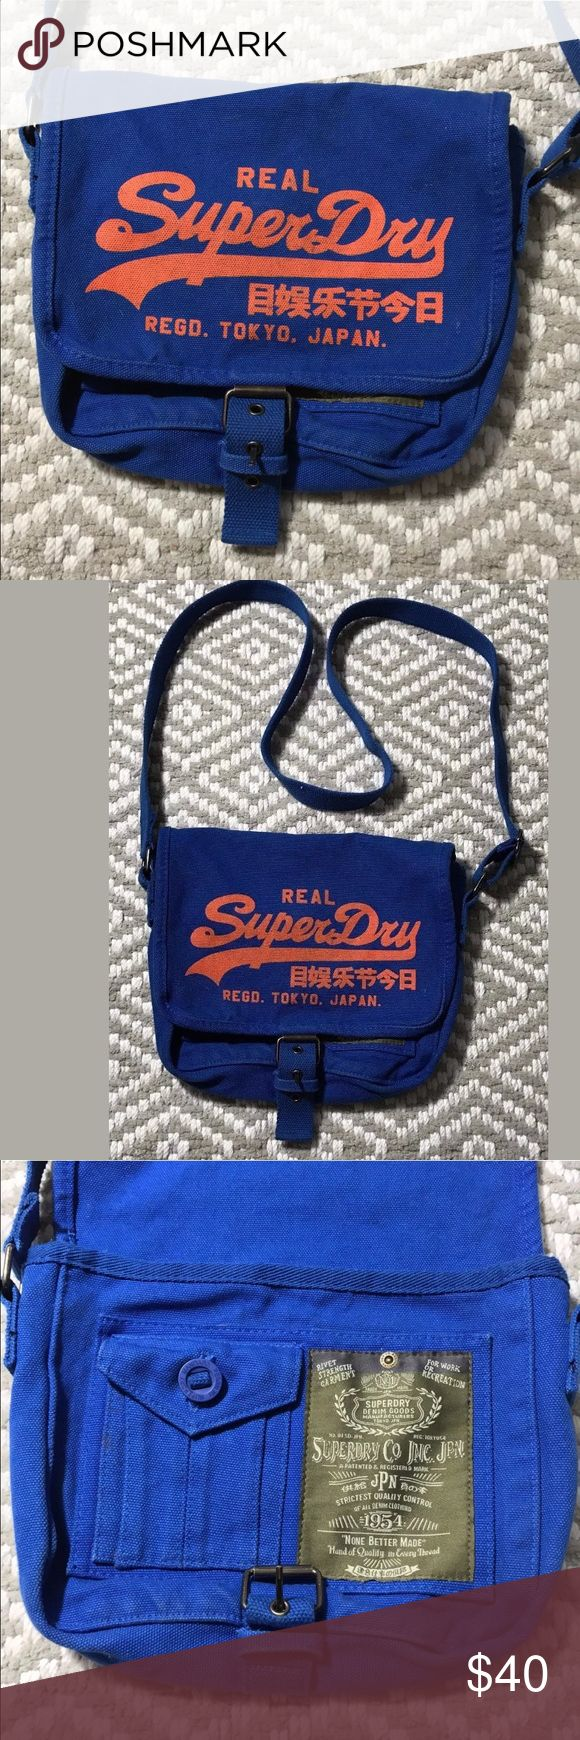 """Superdry blue crossbody messenger handbag SuperDry  Blue Canvas with orange design  Flap closes with buckle  Excellent condition  From clean, non-smoking home.  I am 100% positive and guarantee that it is authentic  10"""" x 8"""" x 2.25""""   Strap is adjustable up to a drop of 24"""" Superdry Bags Crossbody Bags"""